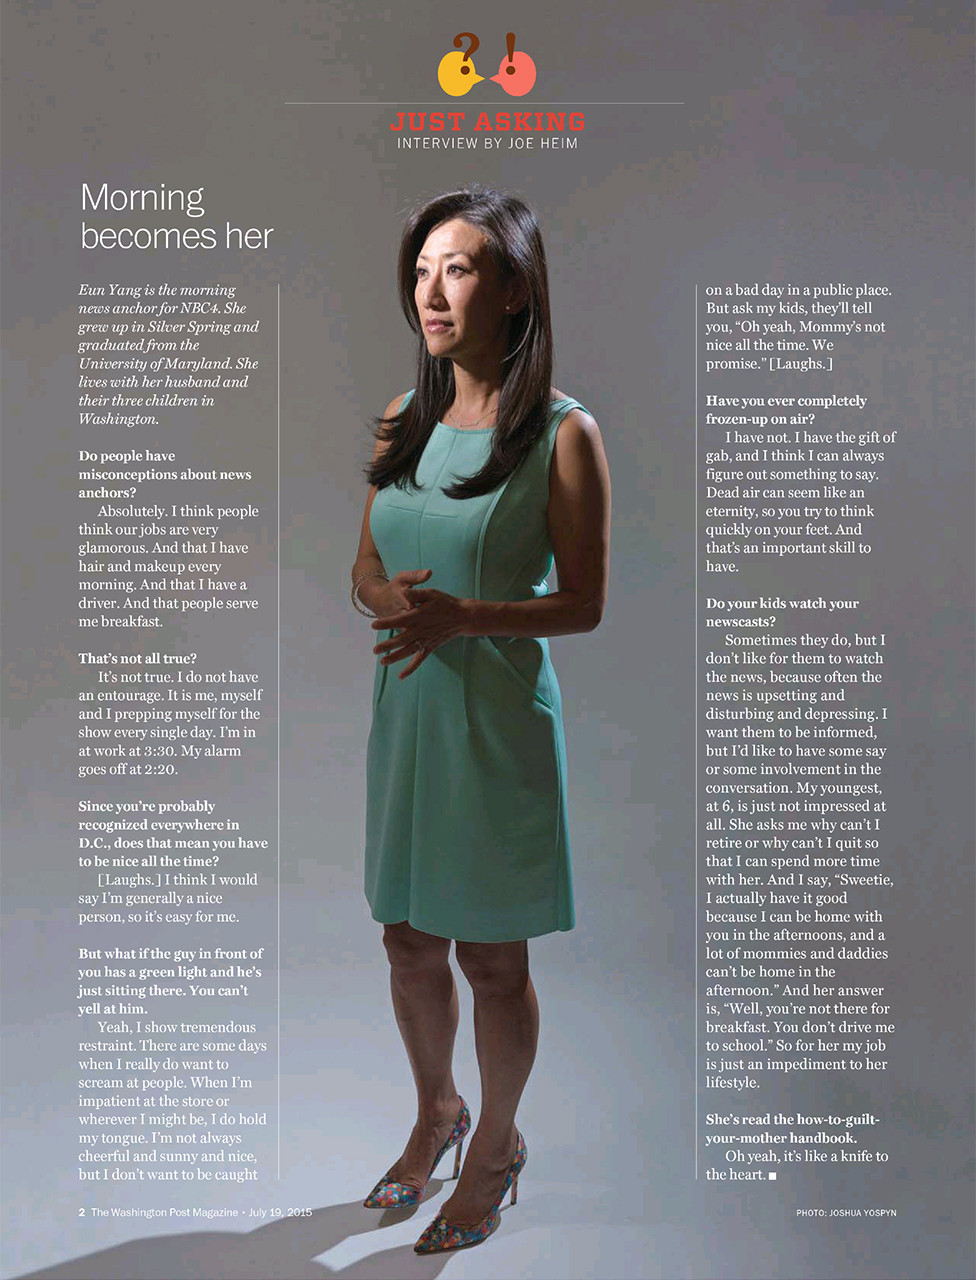 Eun Yang, morning news anchor for NBC4,for The Washington Post Magazine